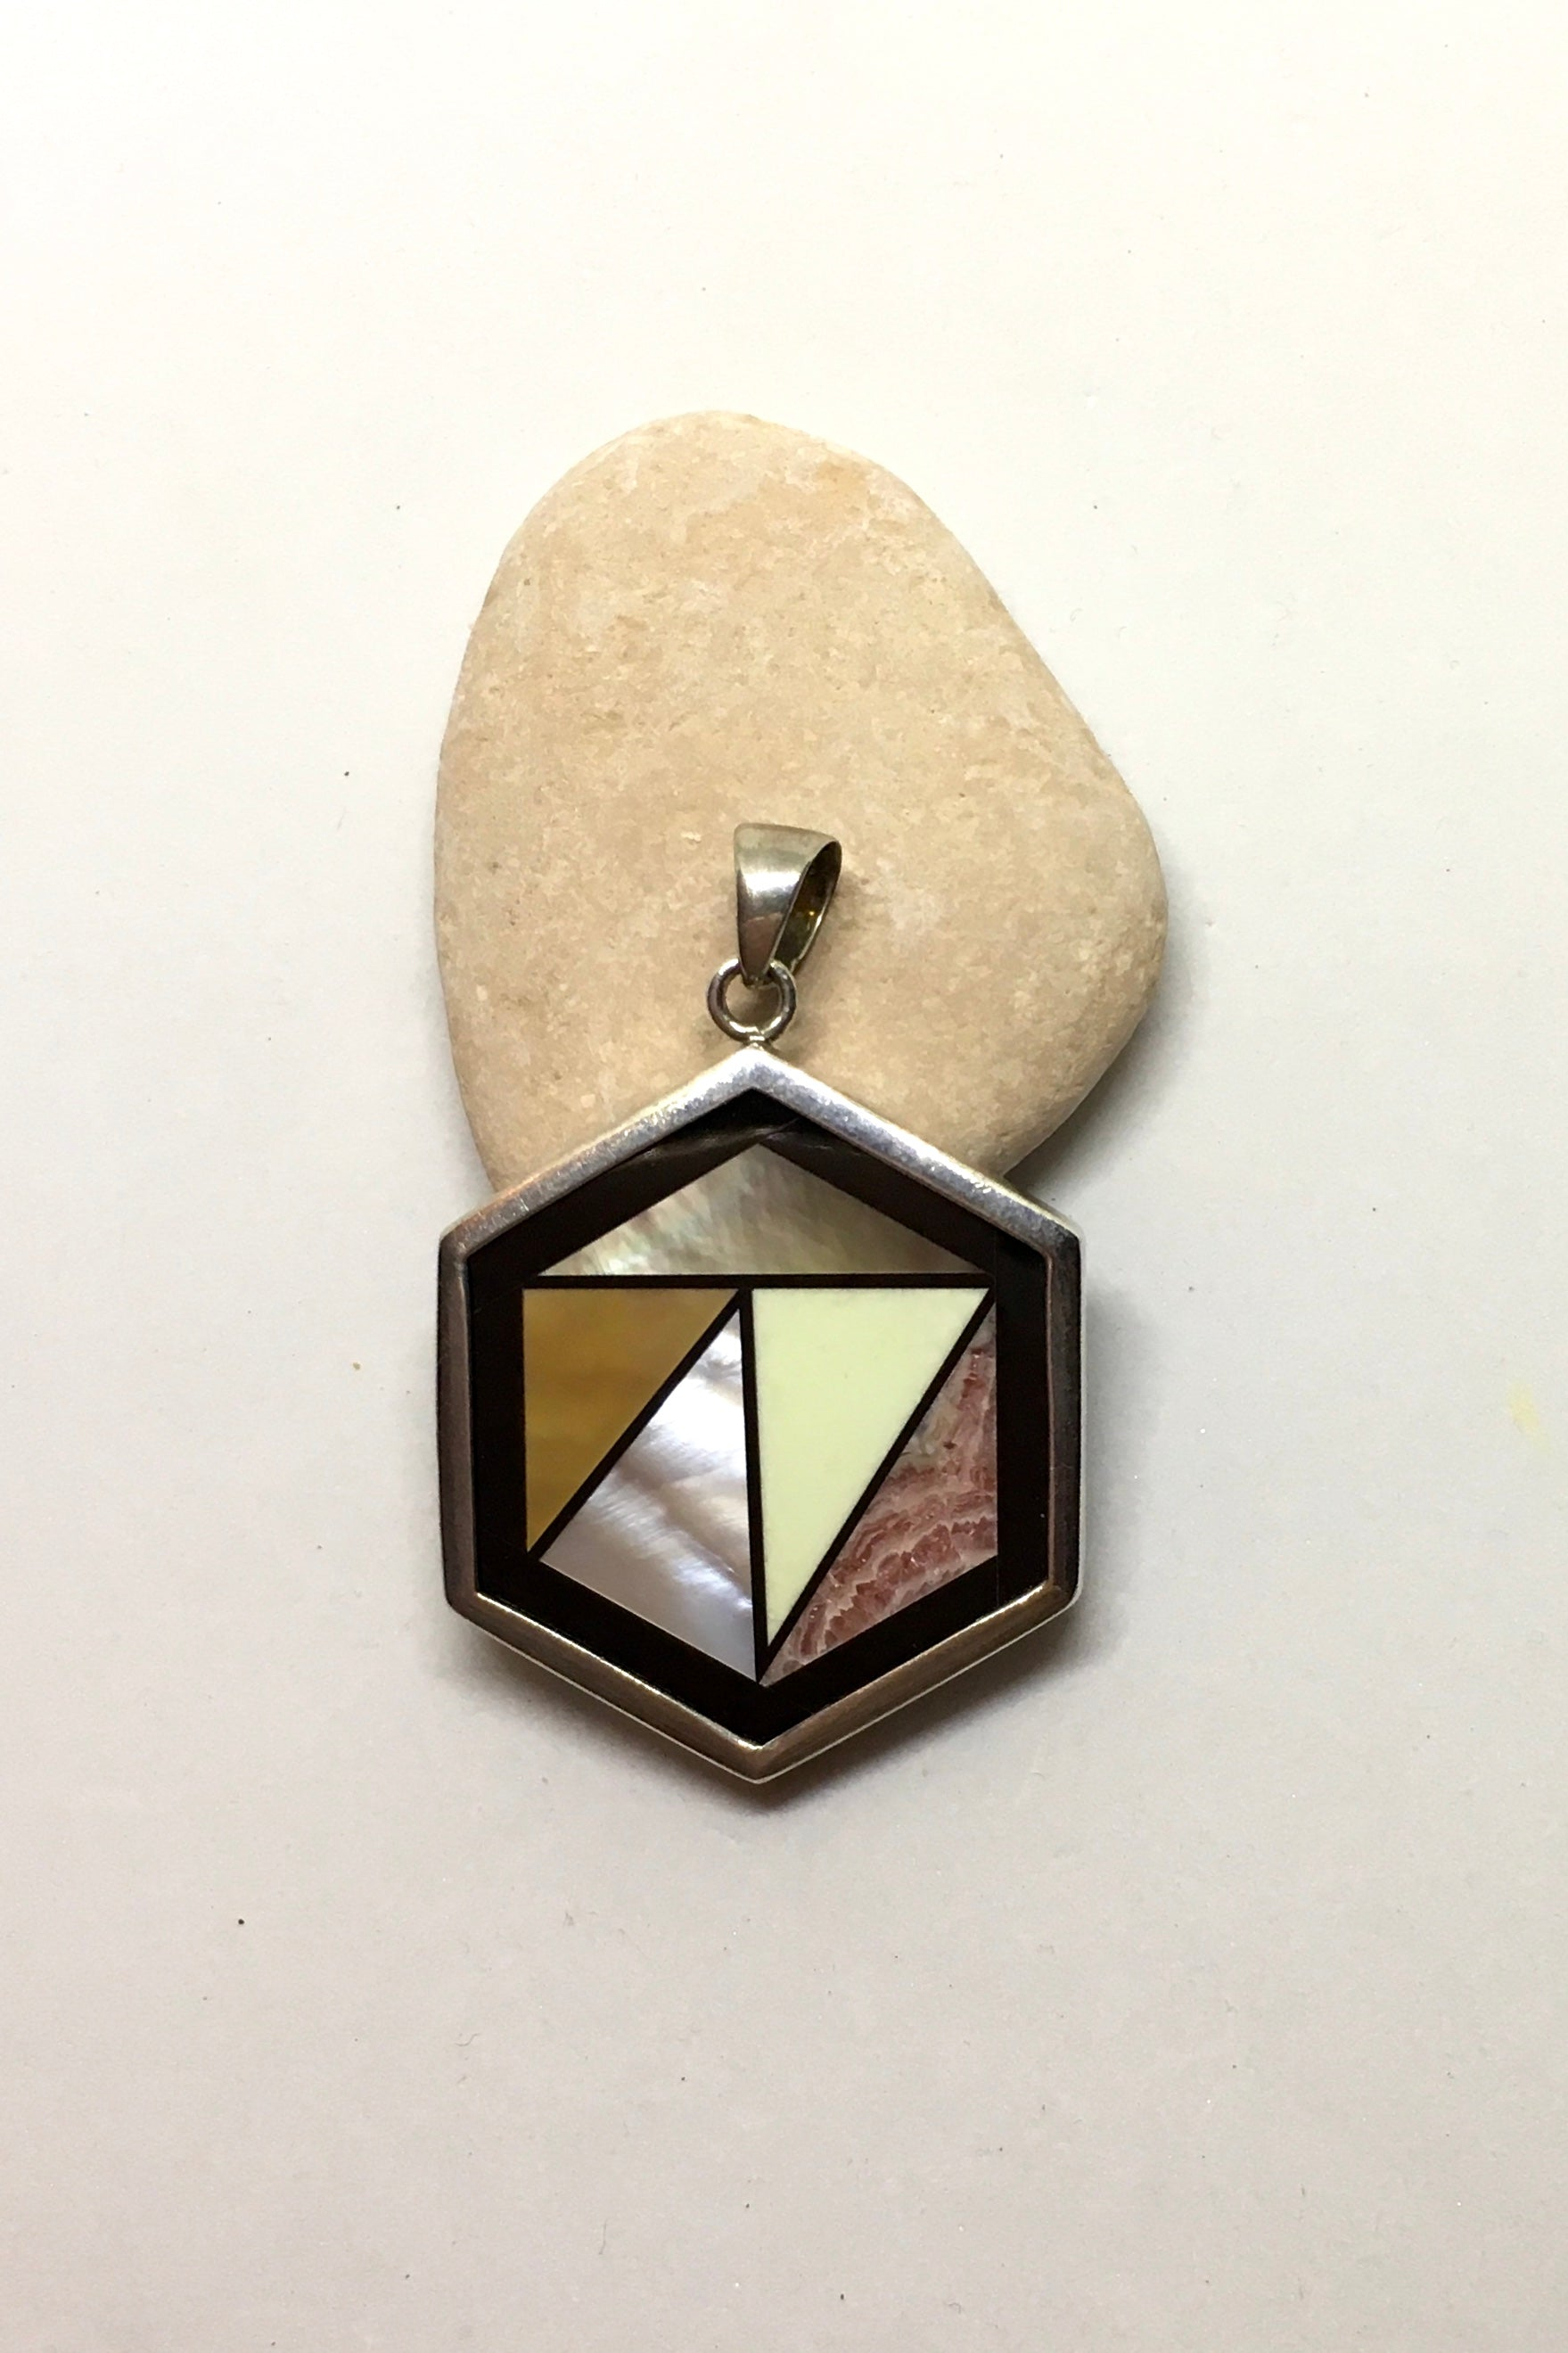 Pendant Heart of Stone and Shell in Geometric shape, inlaid stone pendant